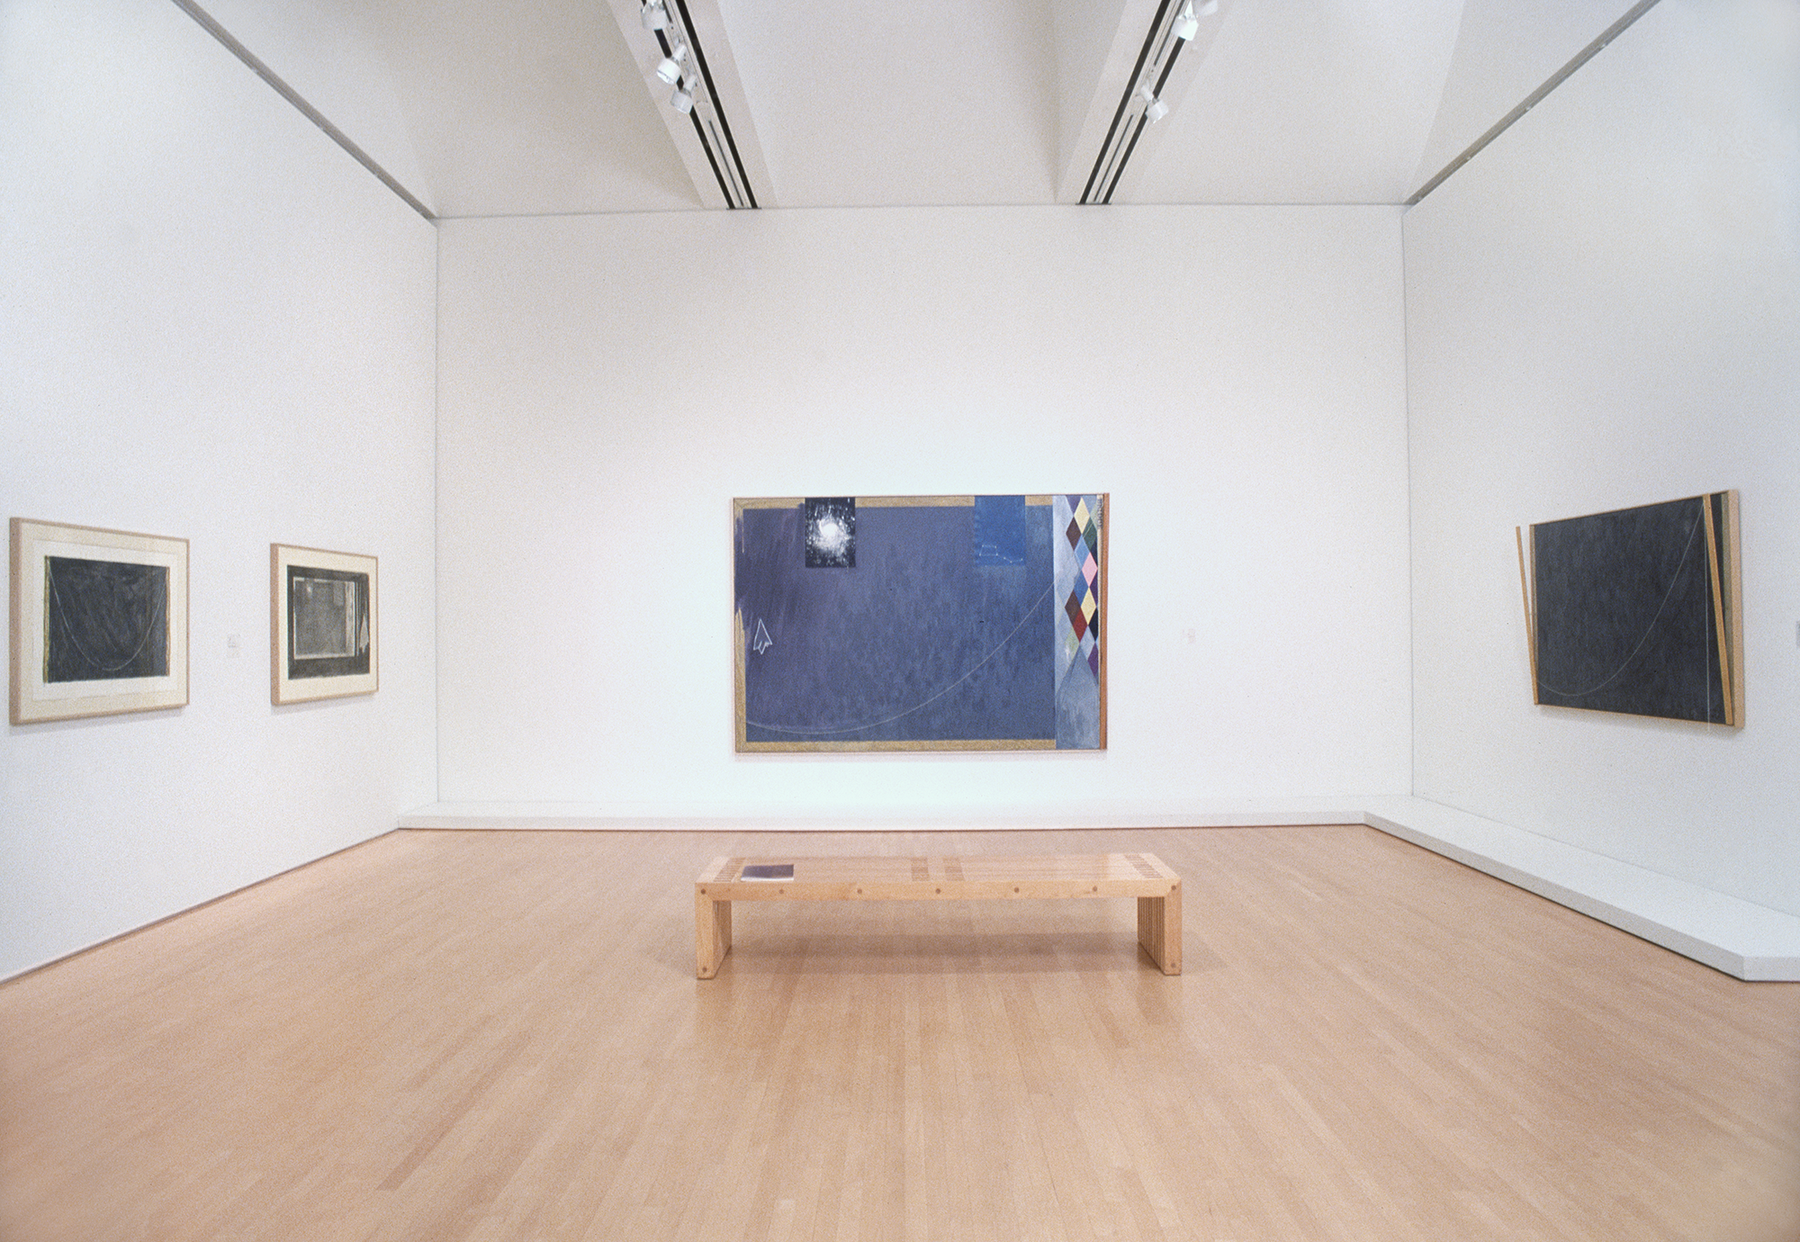 A room with four works by Jasper Johns